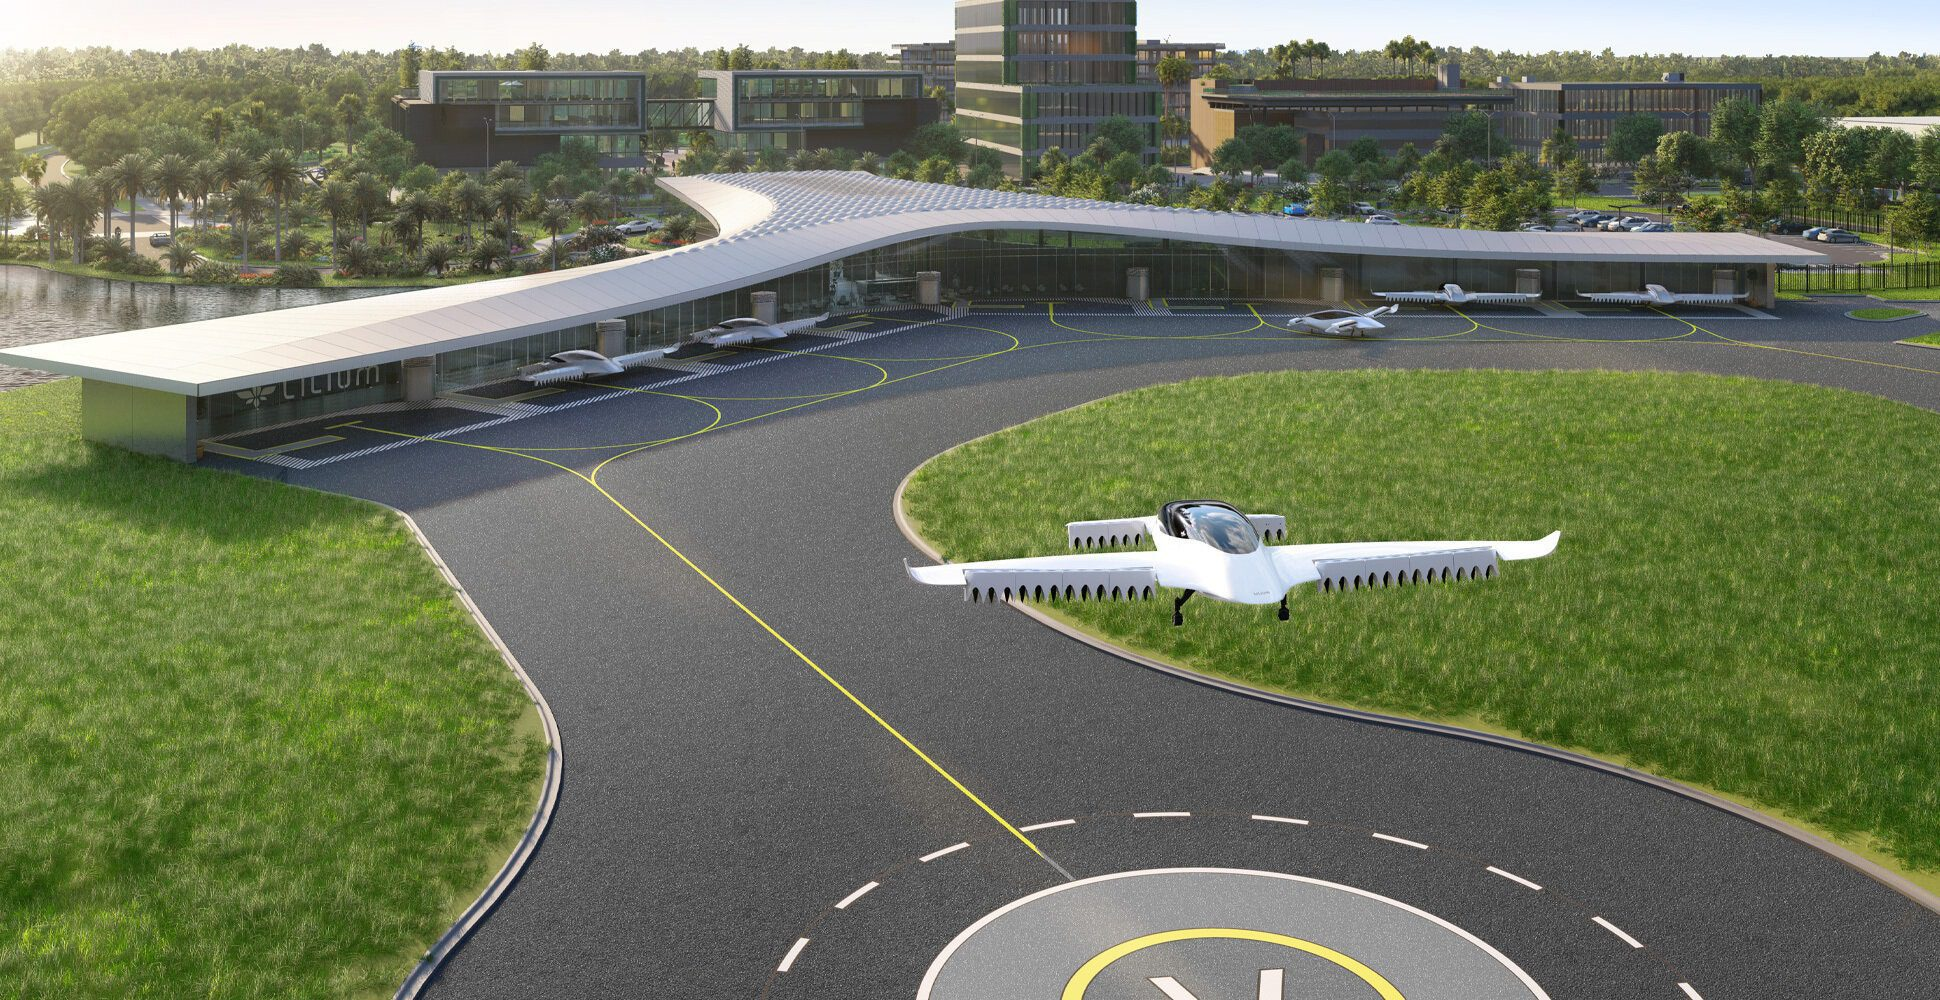 Coming Soon to Lake Nona: The Revolutionary Lilium Vertiport